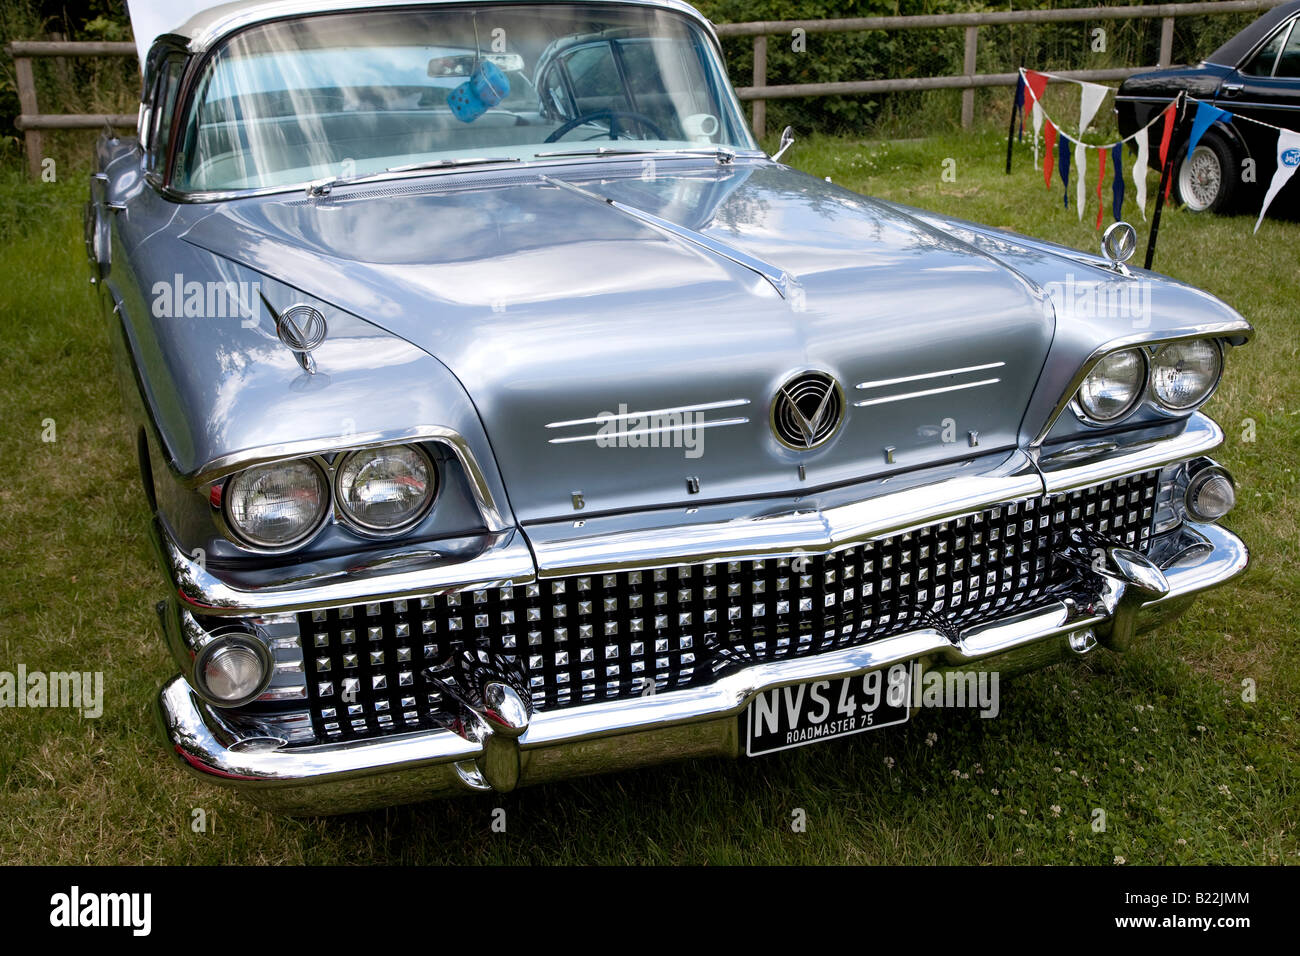 A Classic Buick Muscle Car Stock Photo Royalty Free Image - Buick stock